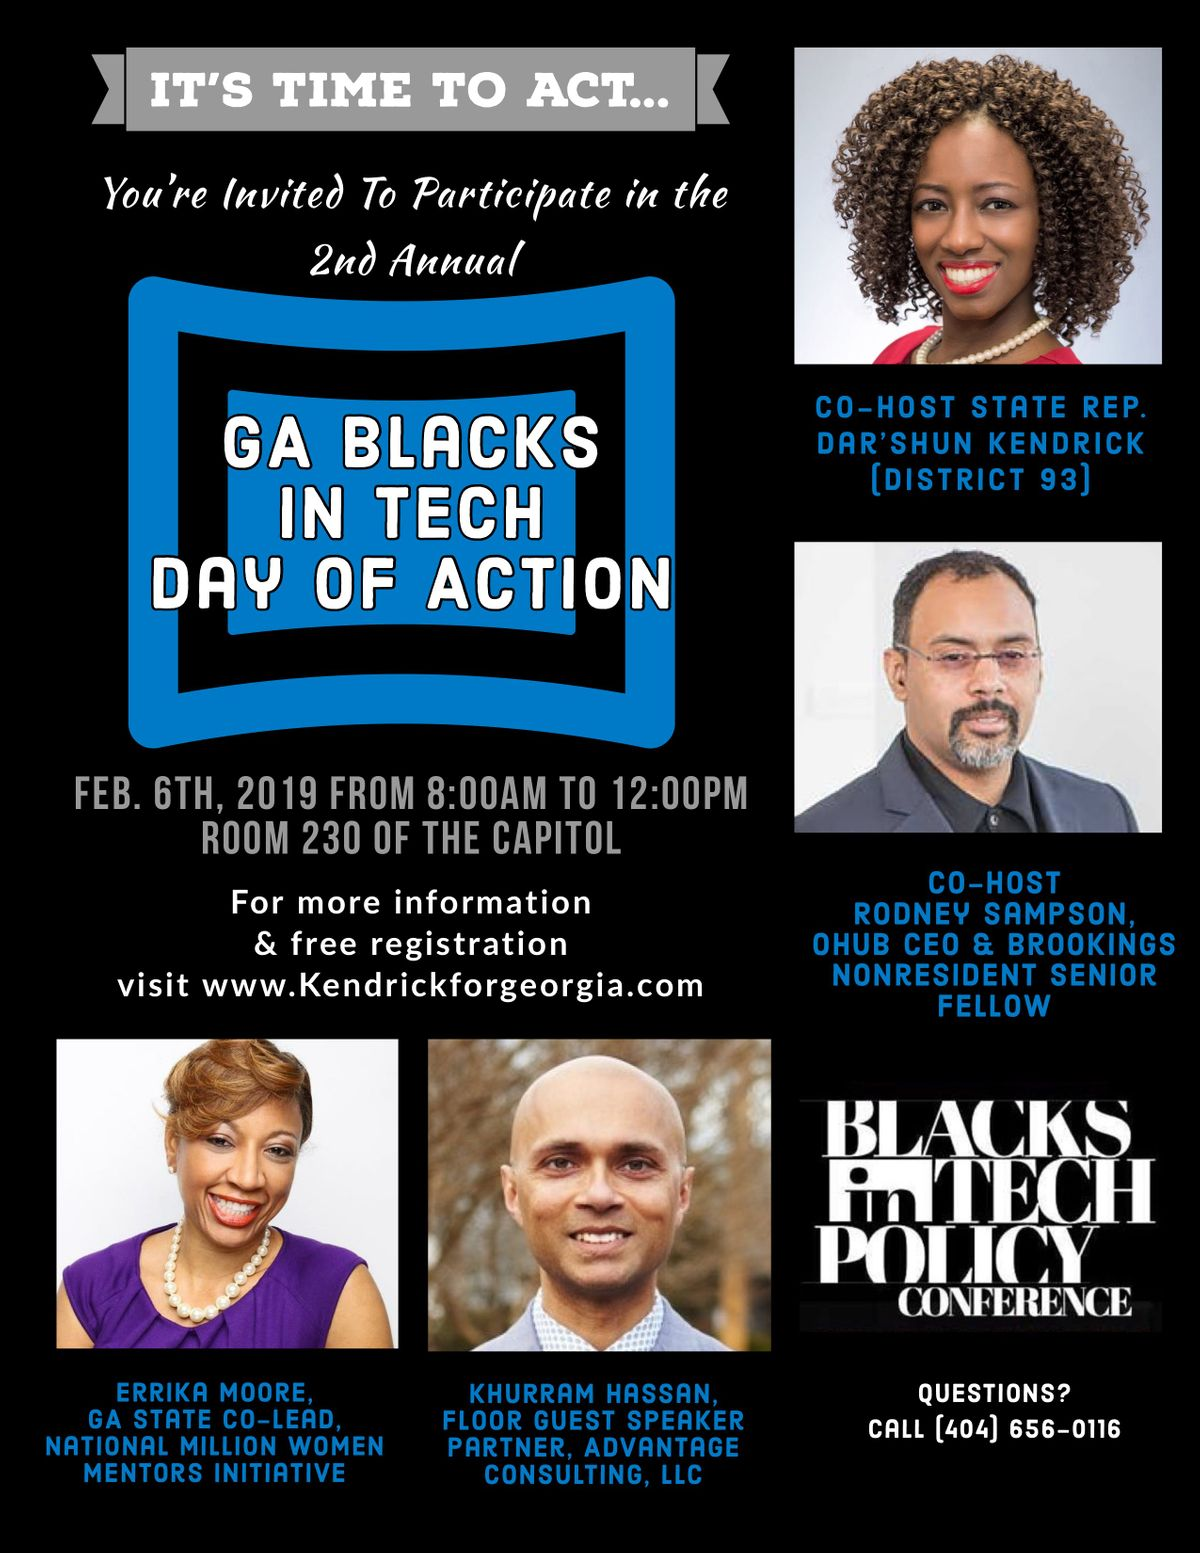 2nd Annual GA Blacks in Tech Policy Conference Day of Action